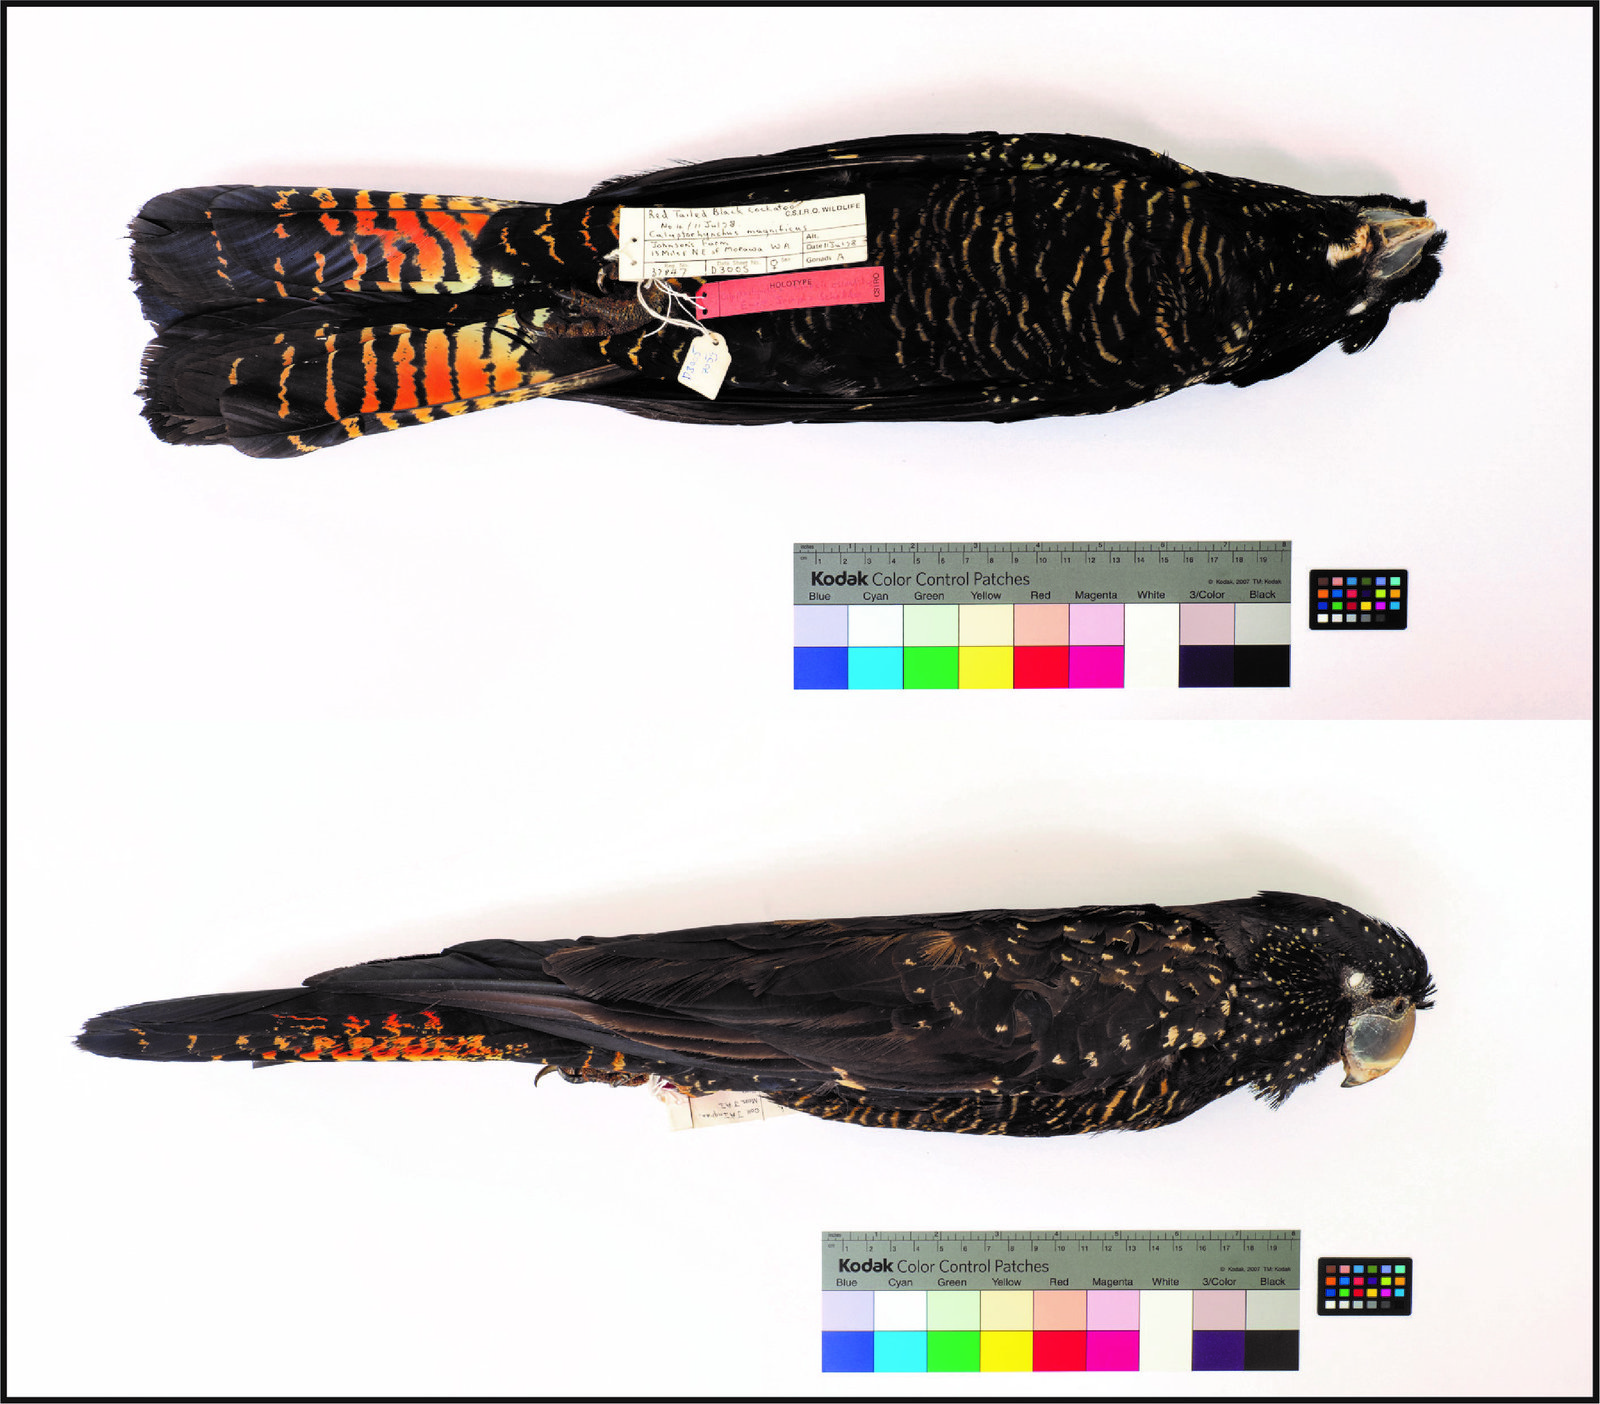 holotype is a specimen held at CSIRO's Australian National Wildlife Collection (ANWC), and it is specimen ANWC B37847